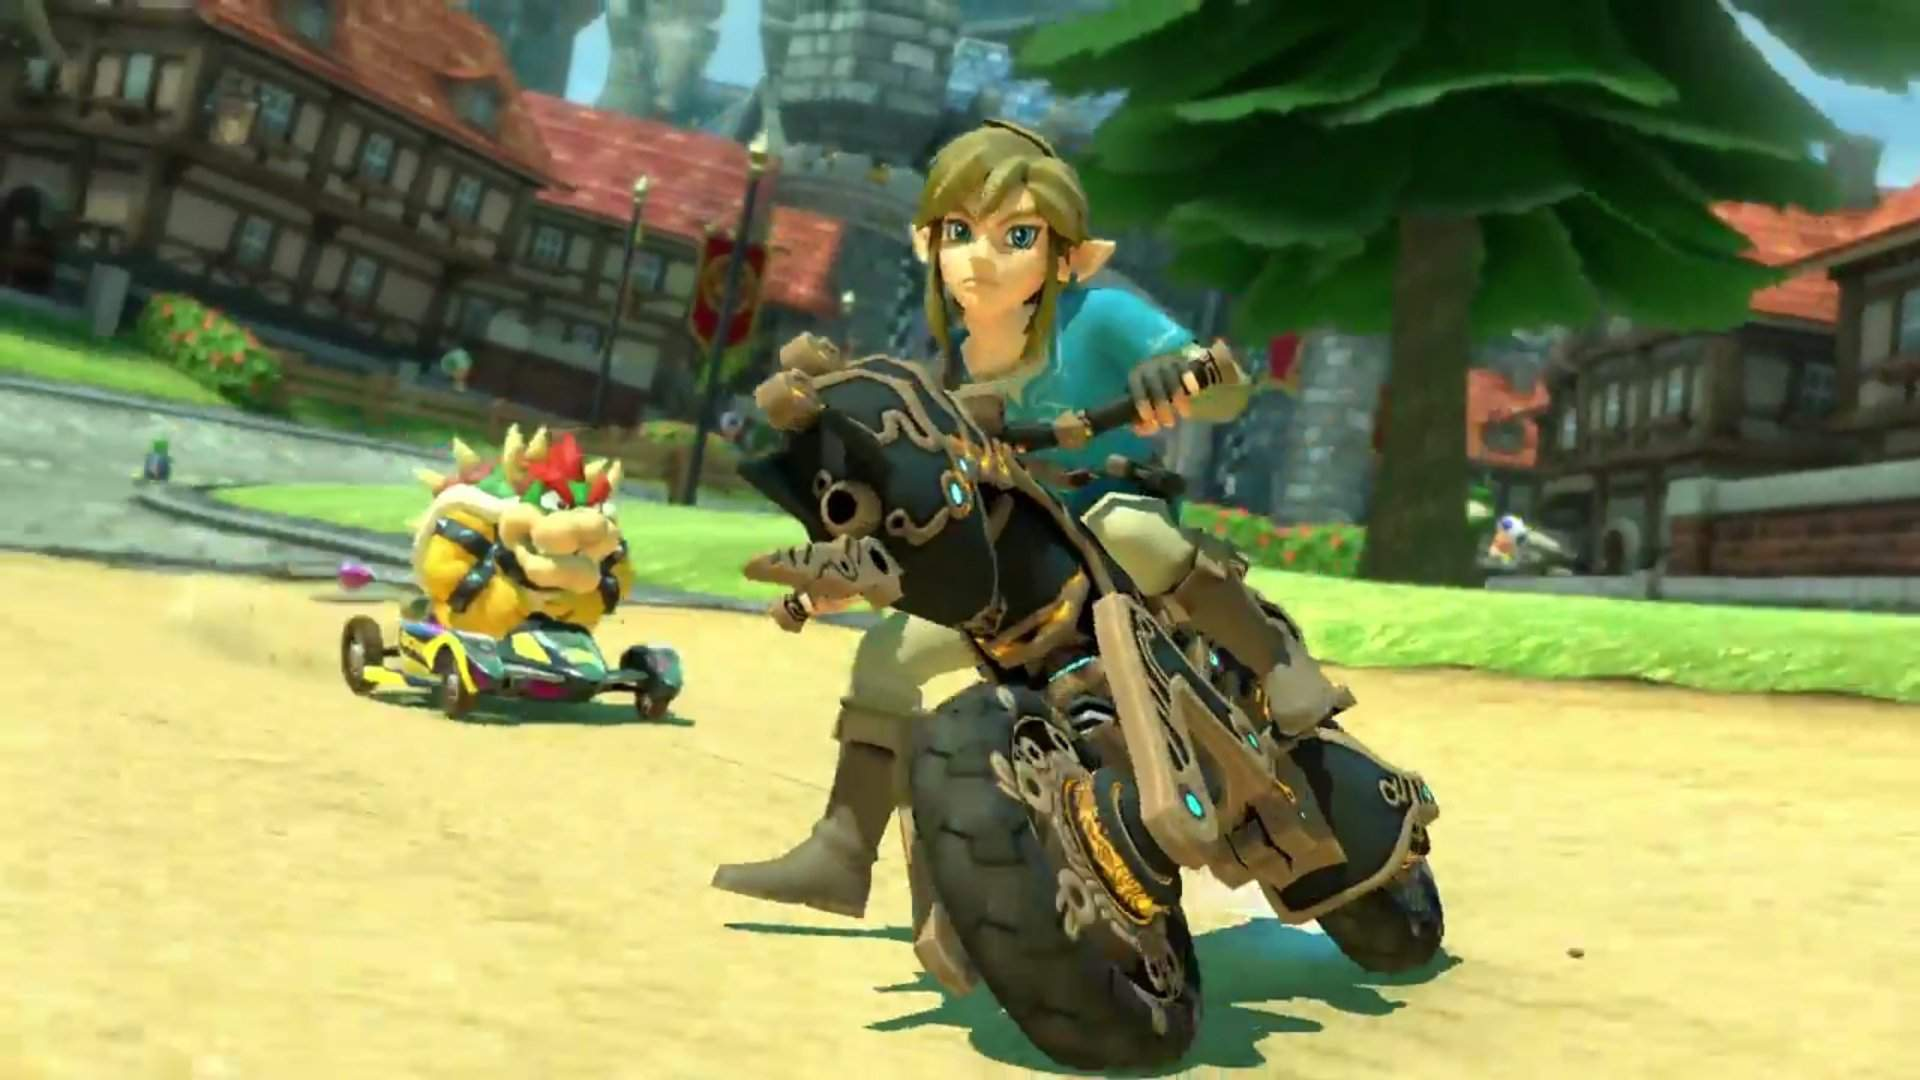 Mario Kart 8 Deluxe Gets Zelda Breath Of The Wild Content